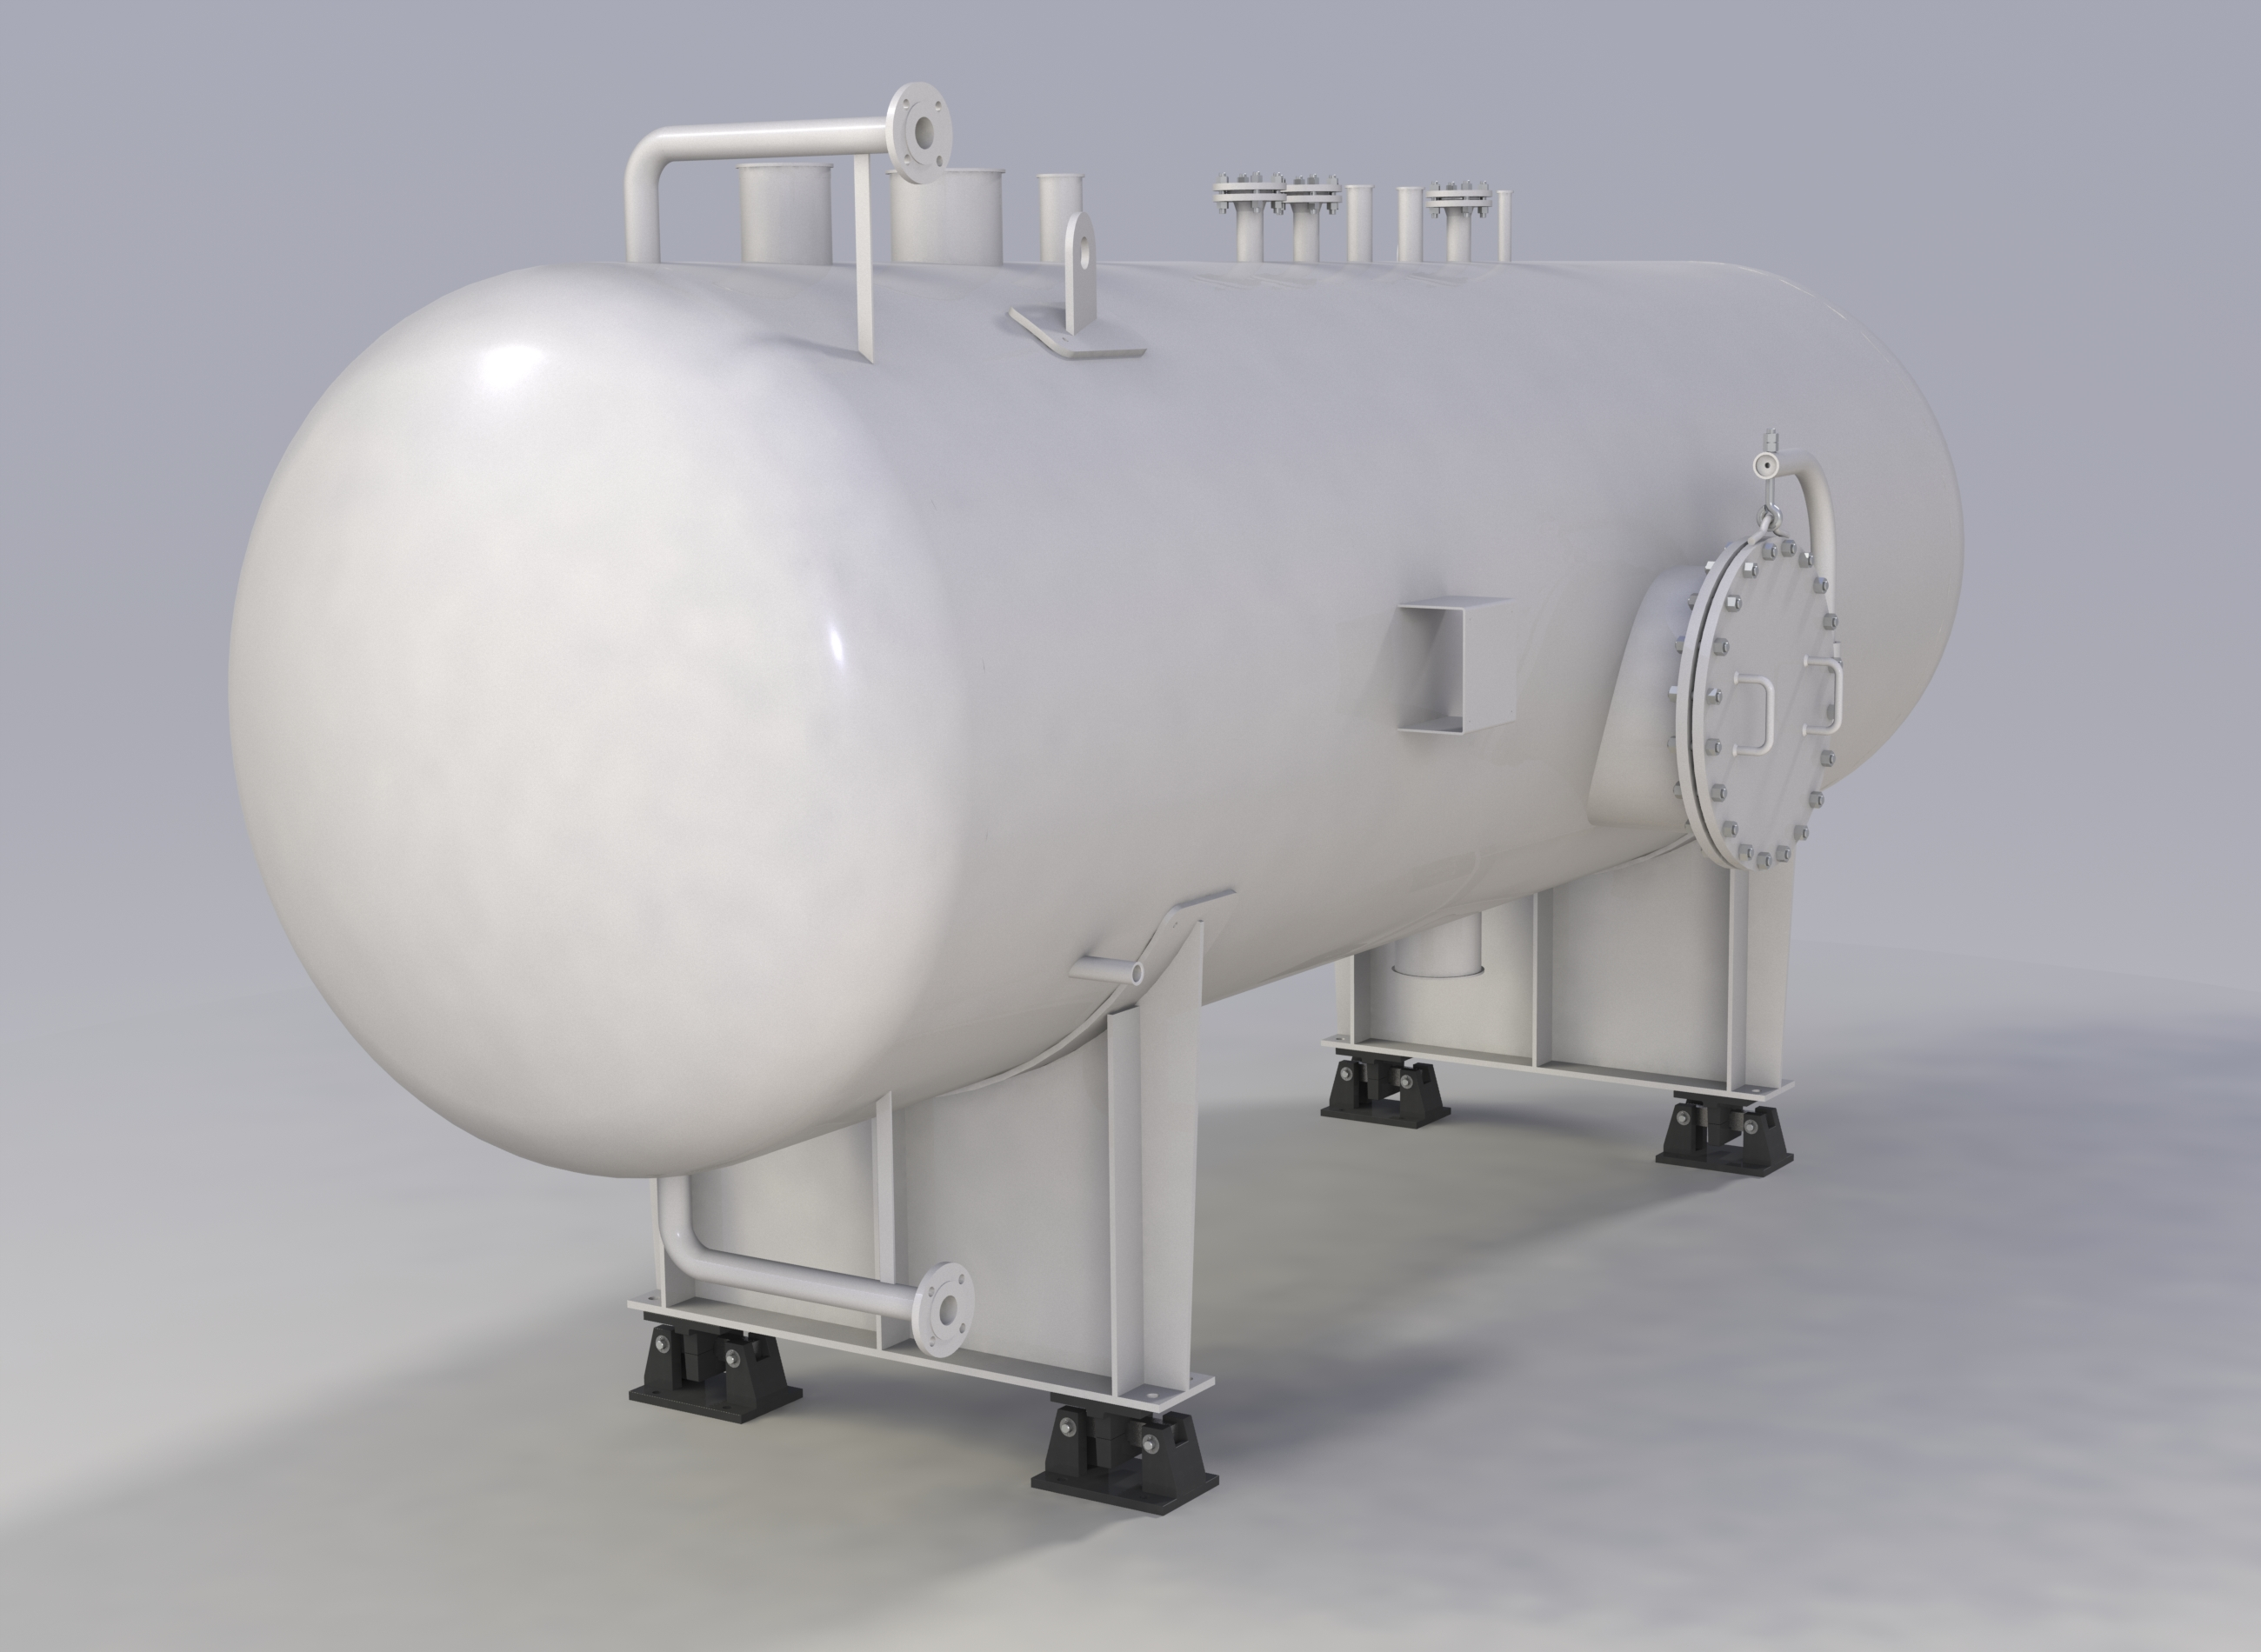 BULK TANK WEIGHING MODULES